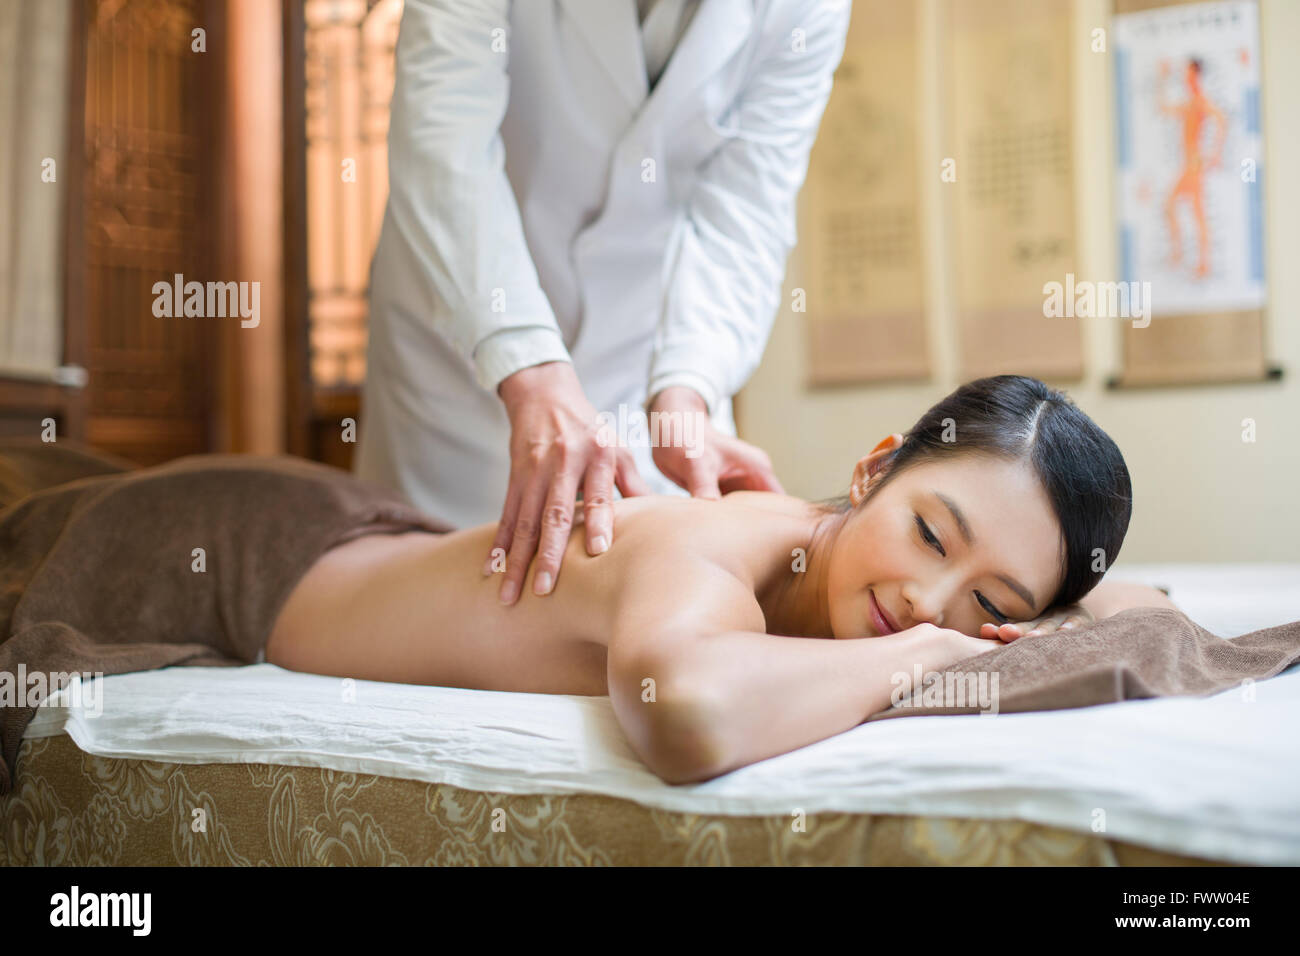 Shiatsu Asia Stock Photos  Shiatsu Asia Stock Images - Alamy-6826